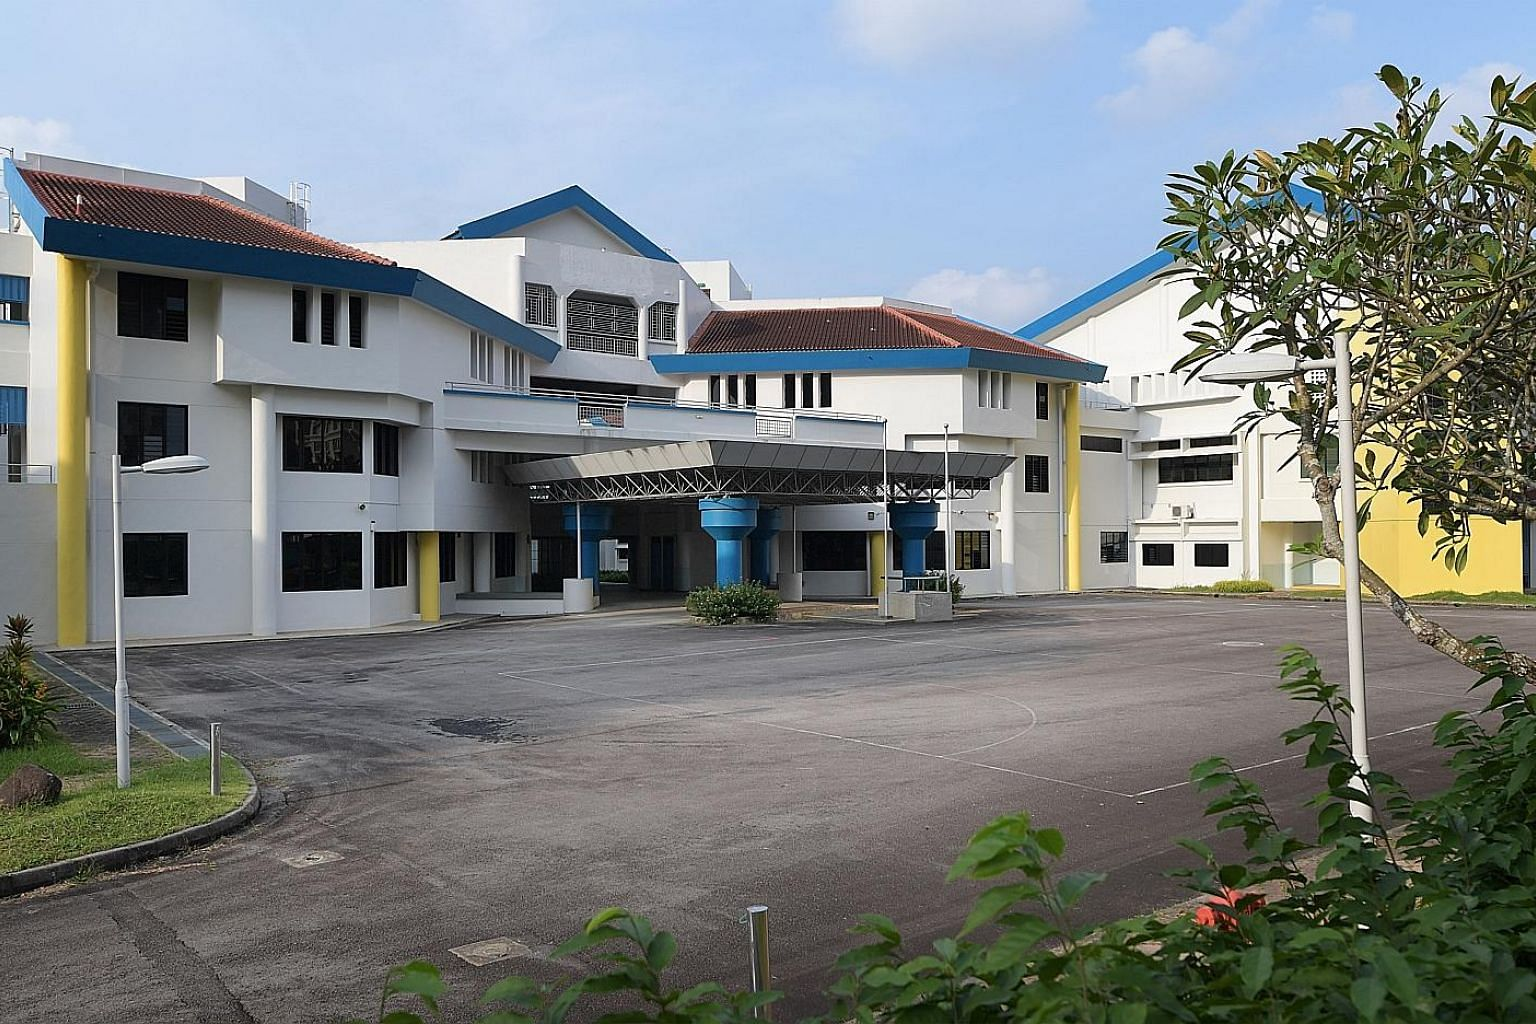 The empty Bishan Park Secondary School, which was vacated earlier this year. Such properties could one day be used to house the elderly.